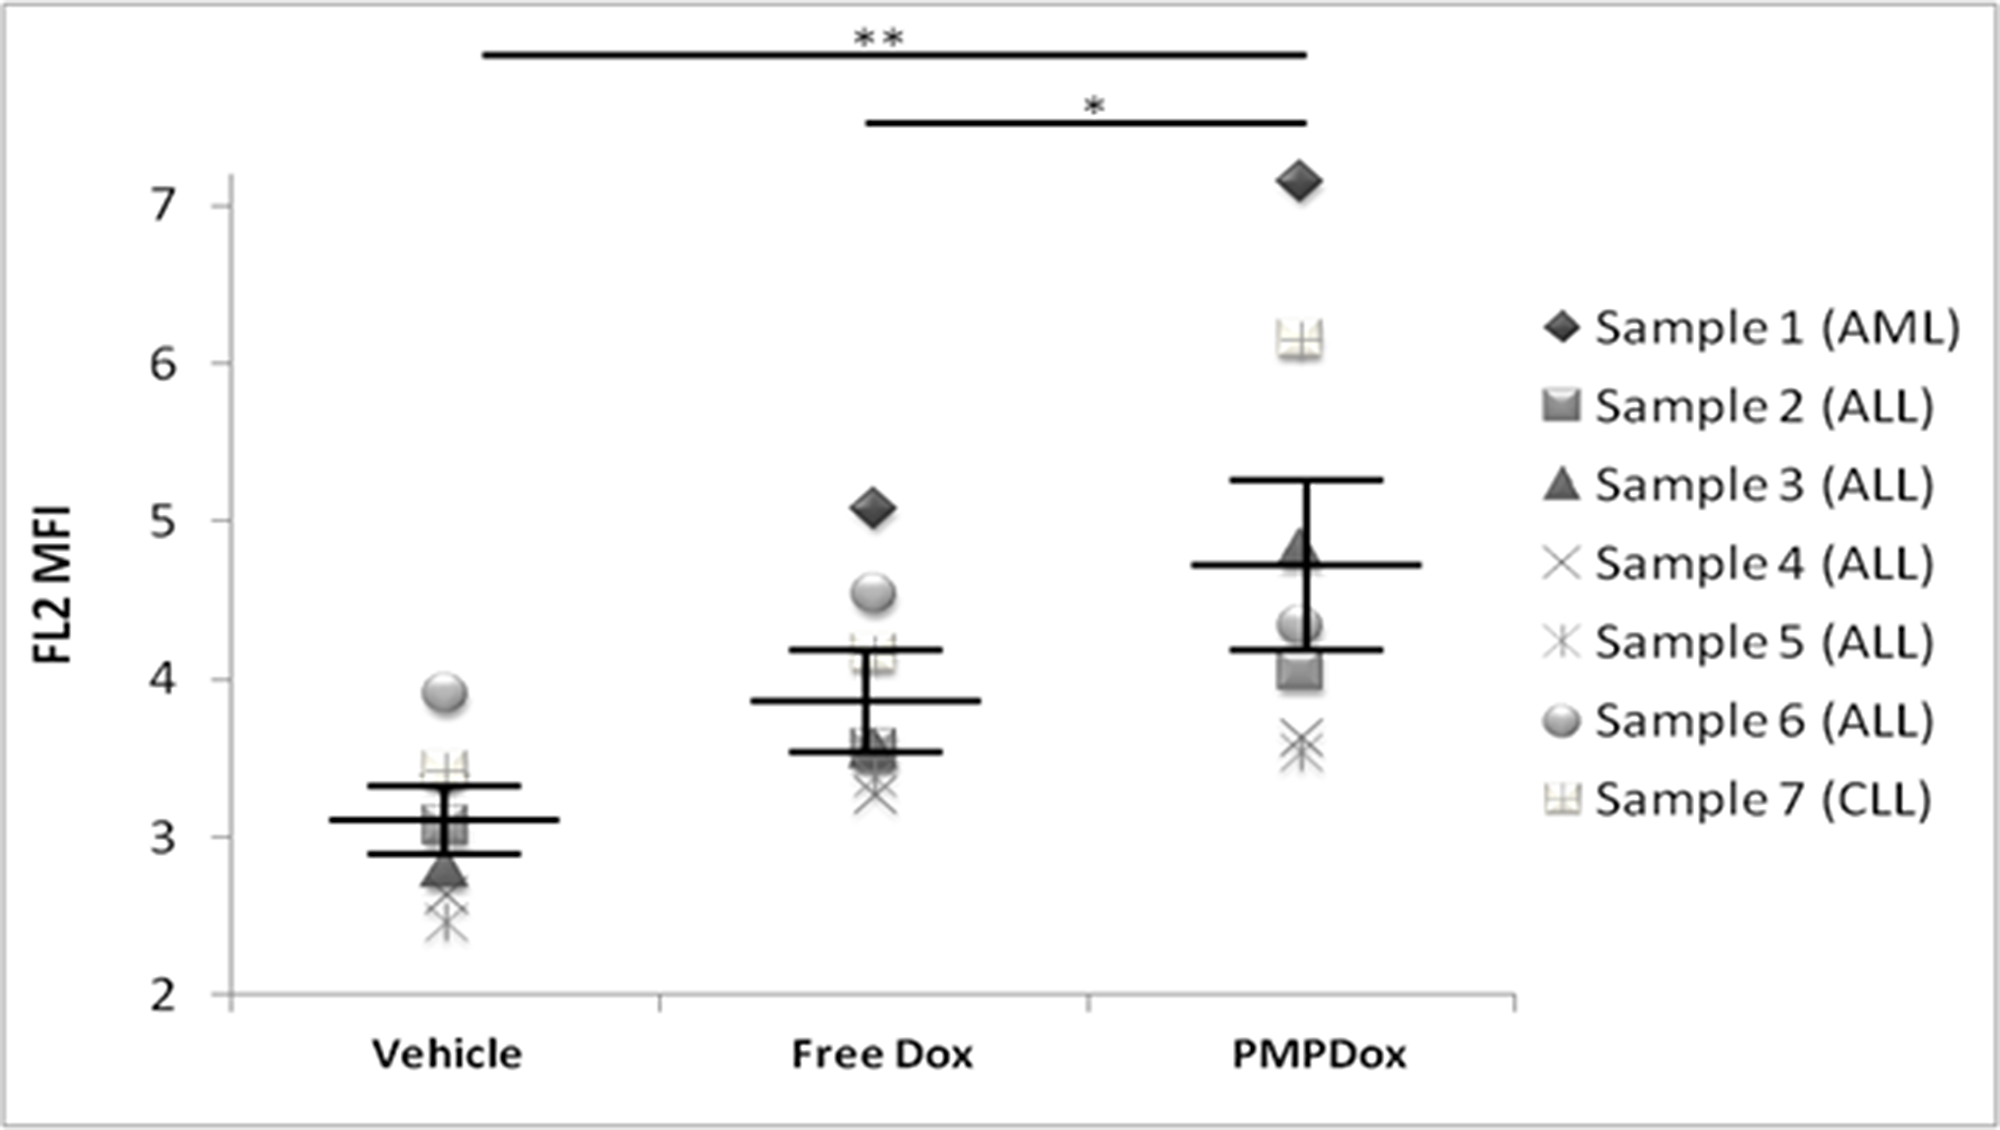 Uptake of Doxorubicin by cancer cells in whole blood samples obtained from patients with leukemia, showing successful and higher uptake of Doxorubicin through PMPDOx compared to free Doxorubicin.